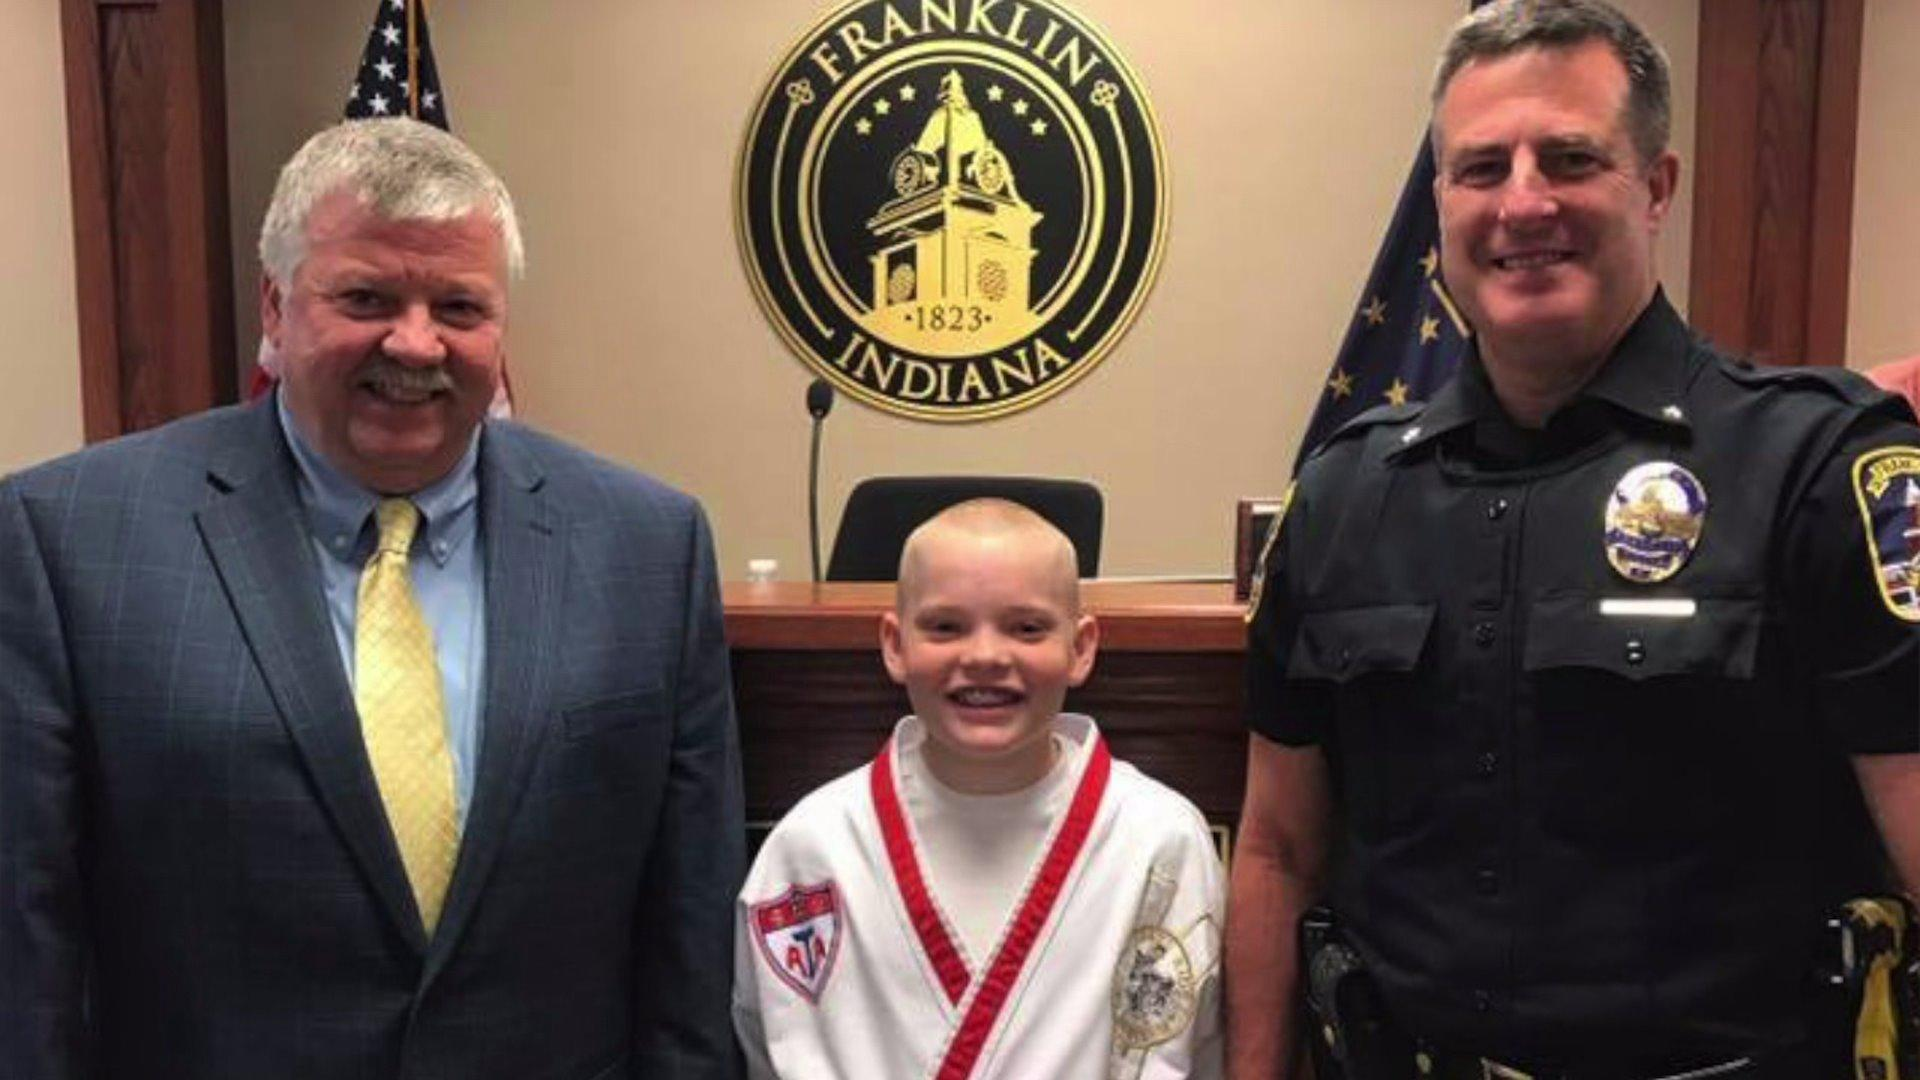 10-Year-Old Boy Raises Thousands for Police K9 Vests